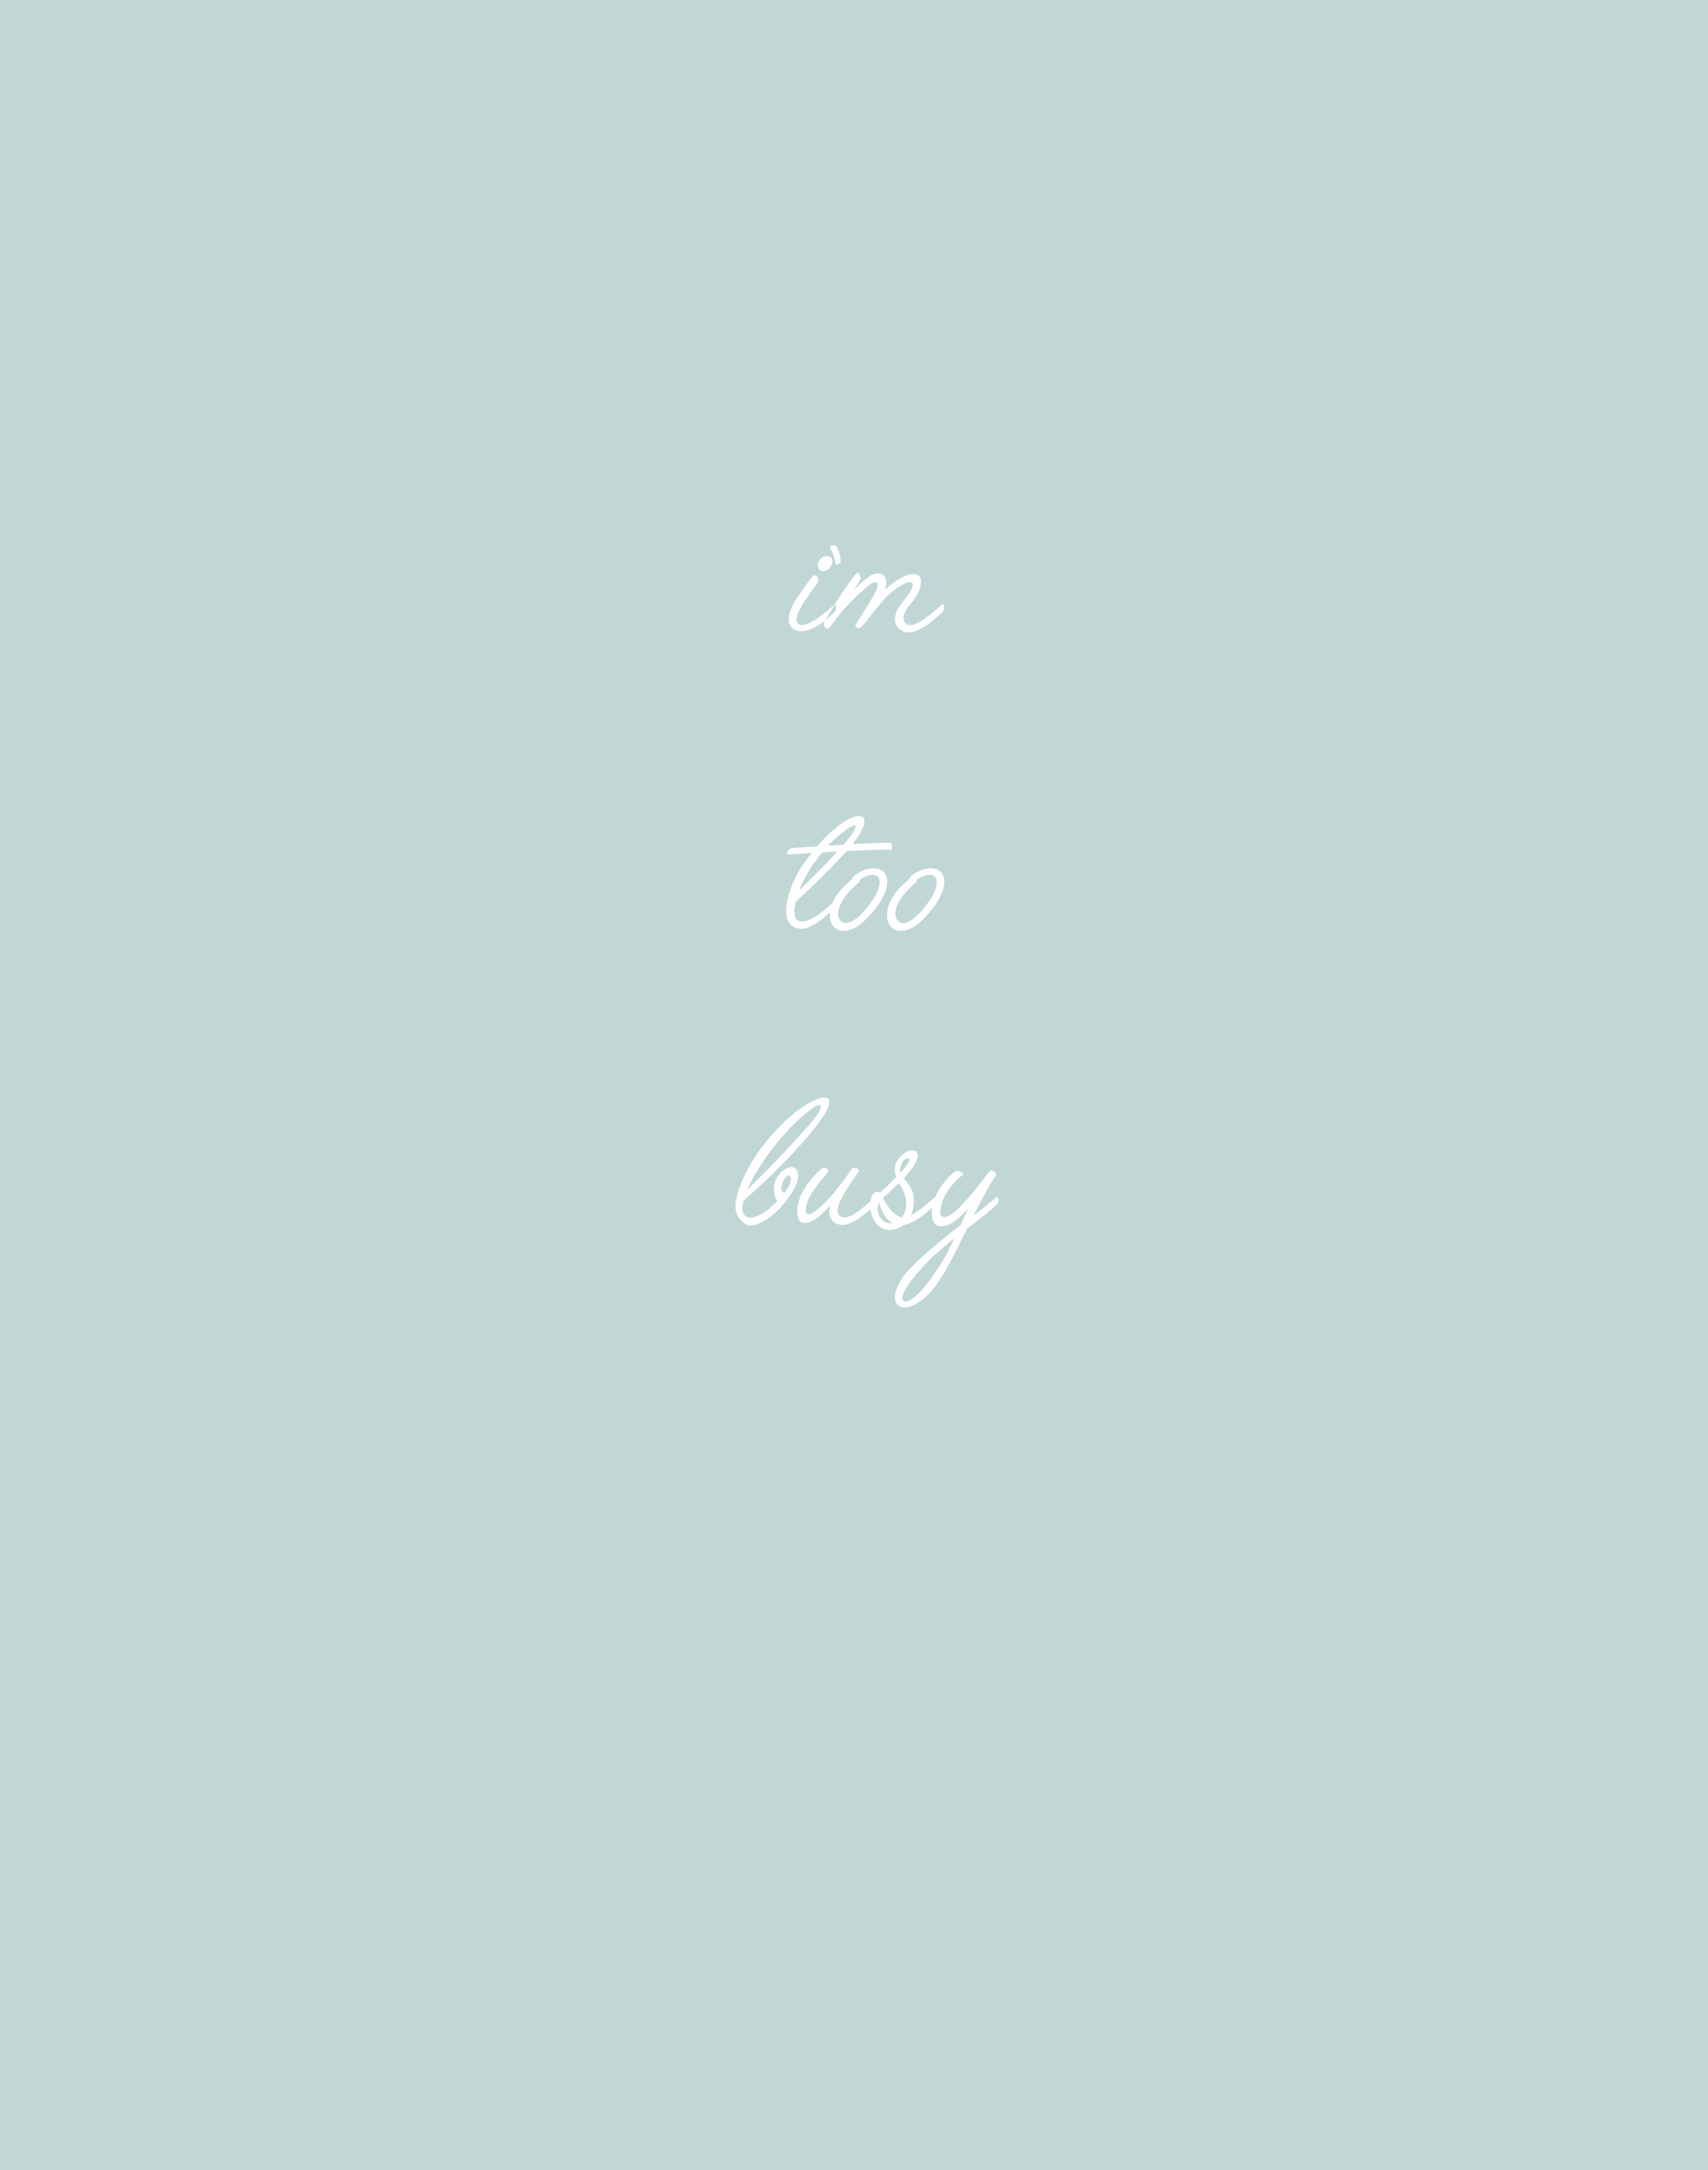 I'M TOO BUSY - This seems to be something that is now part of everybody's day to day language. We all constantly say that we're just SO busy all the time and sometimes it's not true. Often I find myself saying this out of habit, like it just comes out even when I'm not that busy because I feel like by saying that I'm too busy then it makes me look like I fit in with society. Sometimes I am busy but more often than not I can make time for something if I use my time wisely. And also getting rid of the fear of saying we're not busy, by saying we don't have a schedule that's jam-packed doesn't mean we're lazy or that we're not doing well. It's totally ok and normal not to be busy all the time.